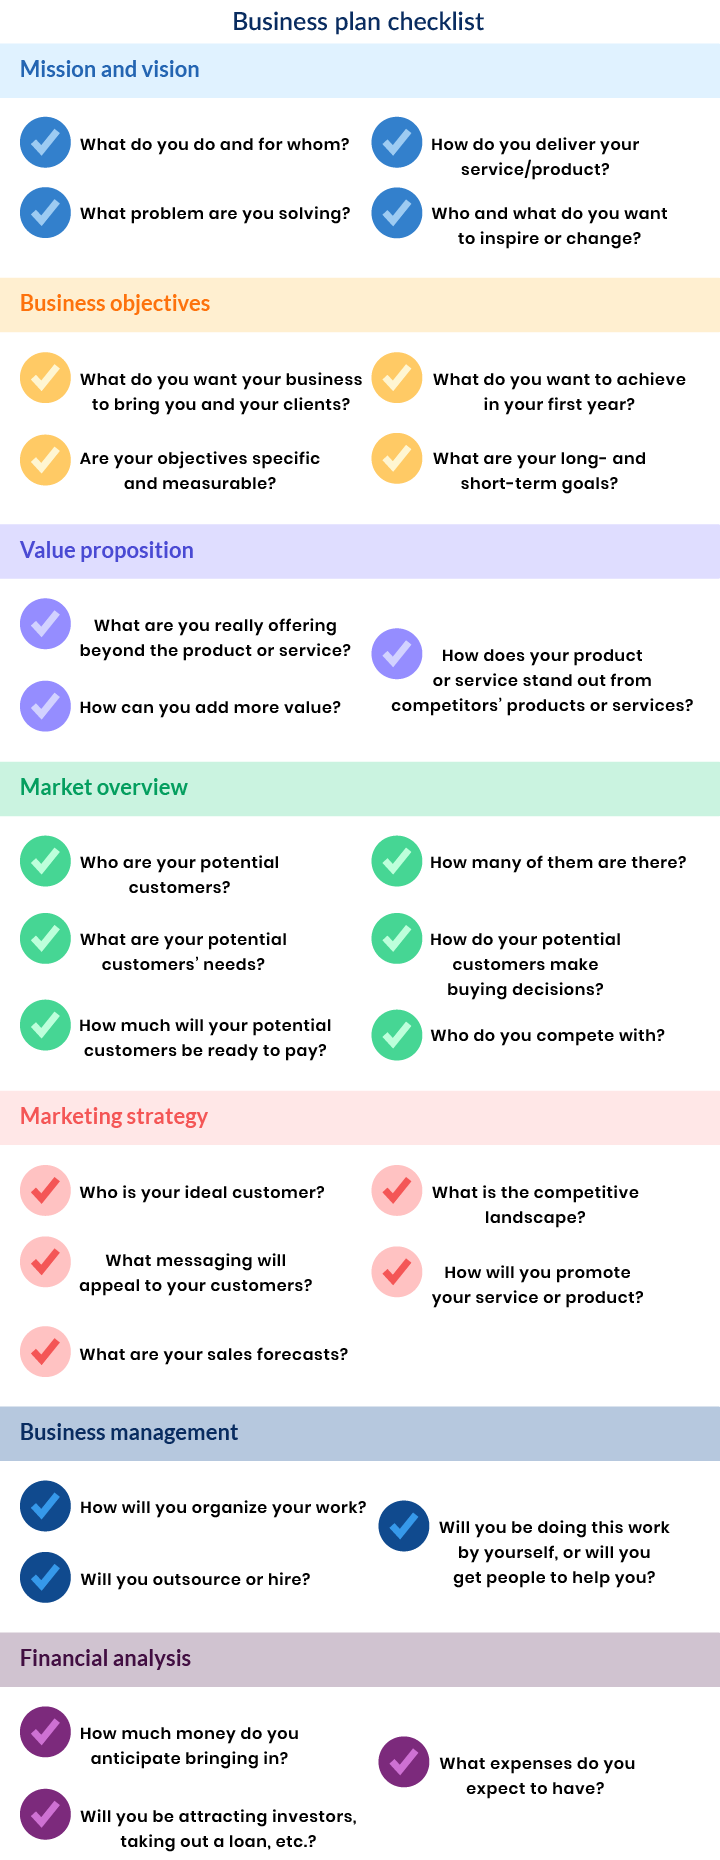 home-based business plan checklist